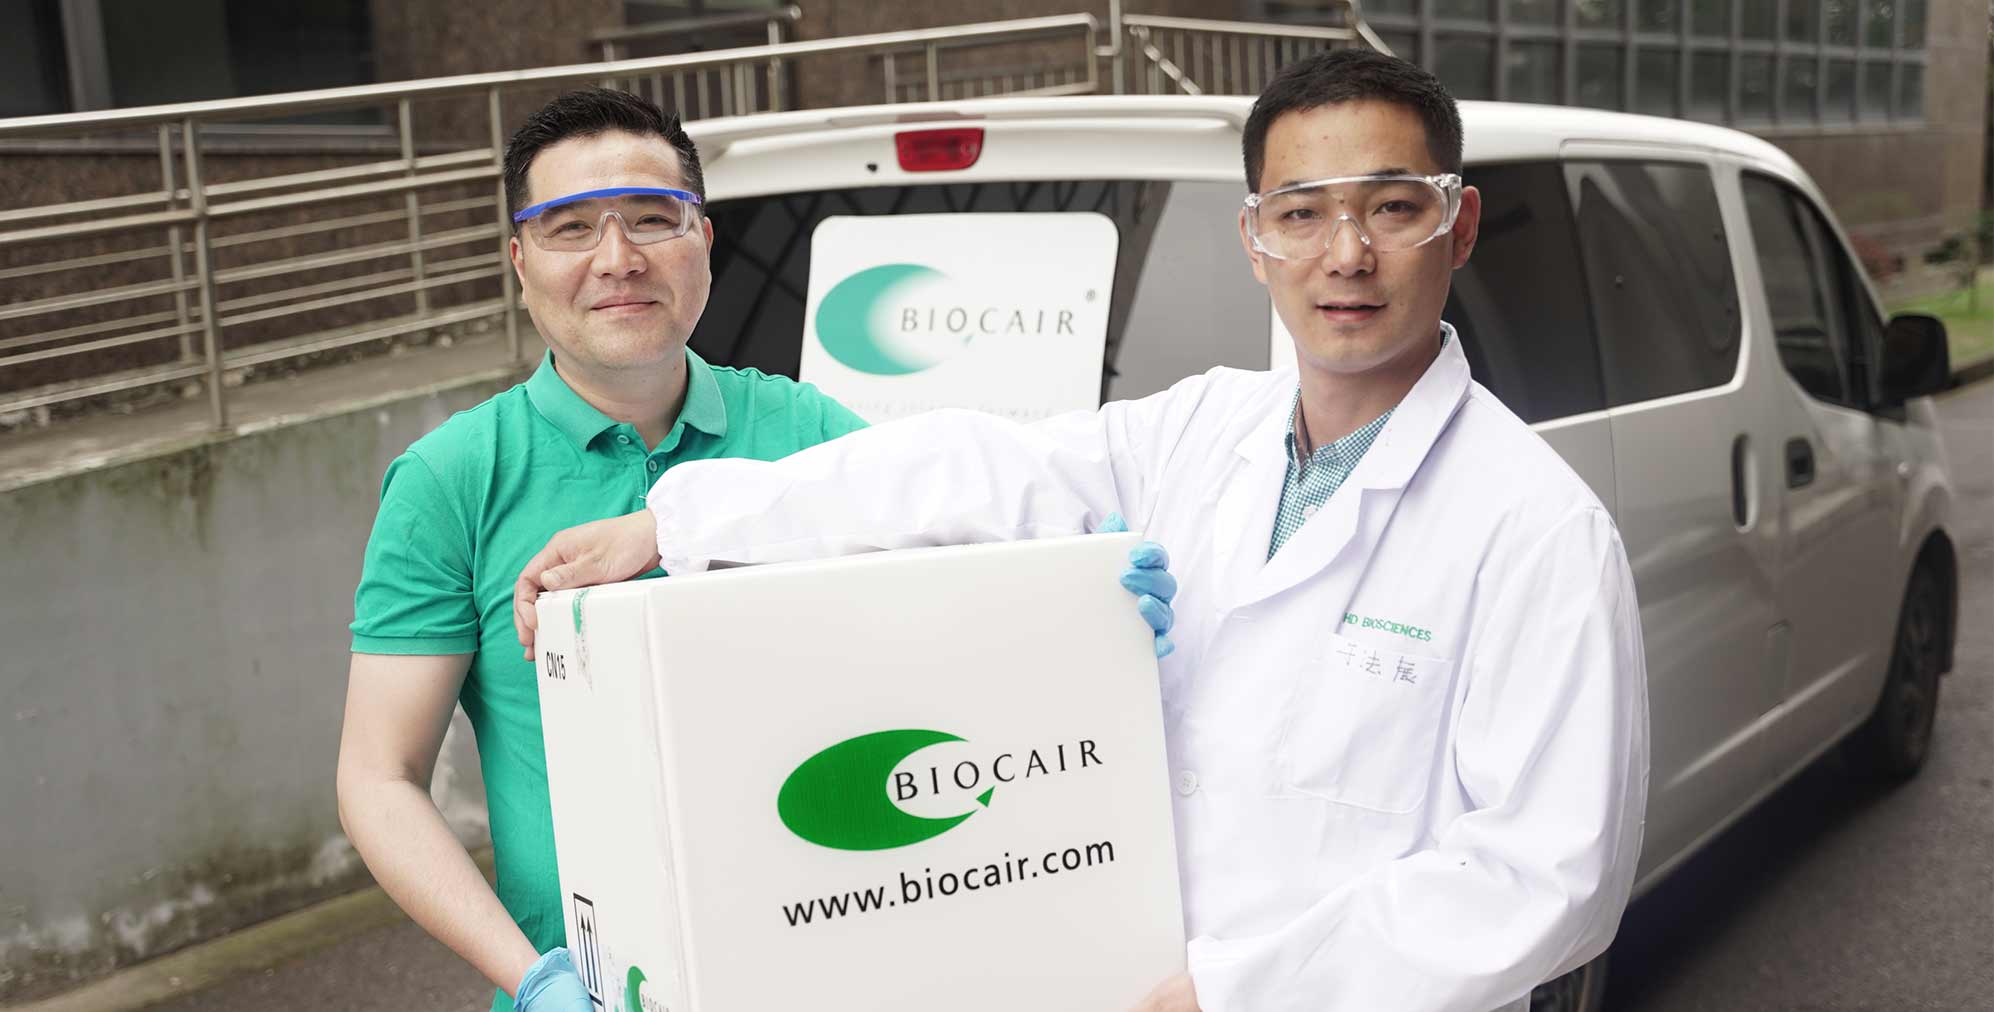 Biocair colleague and customer